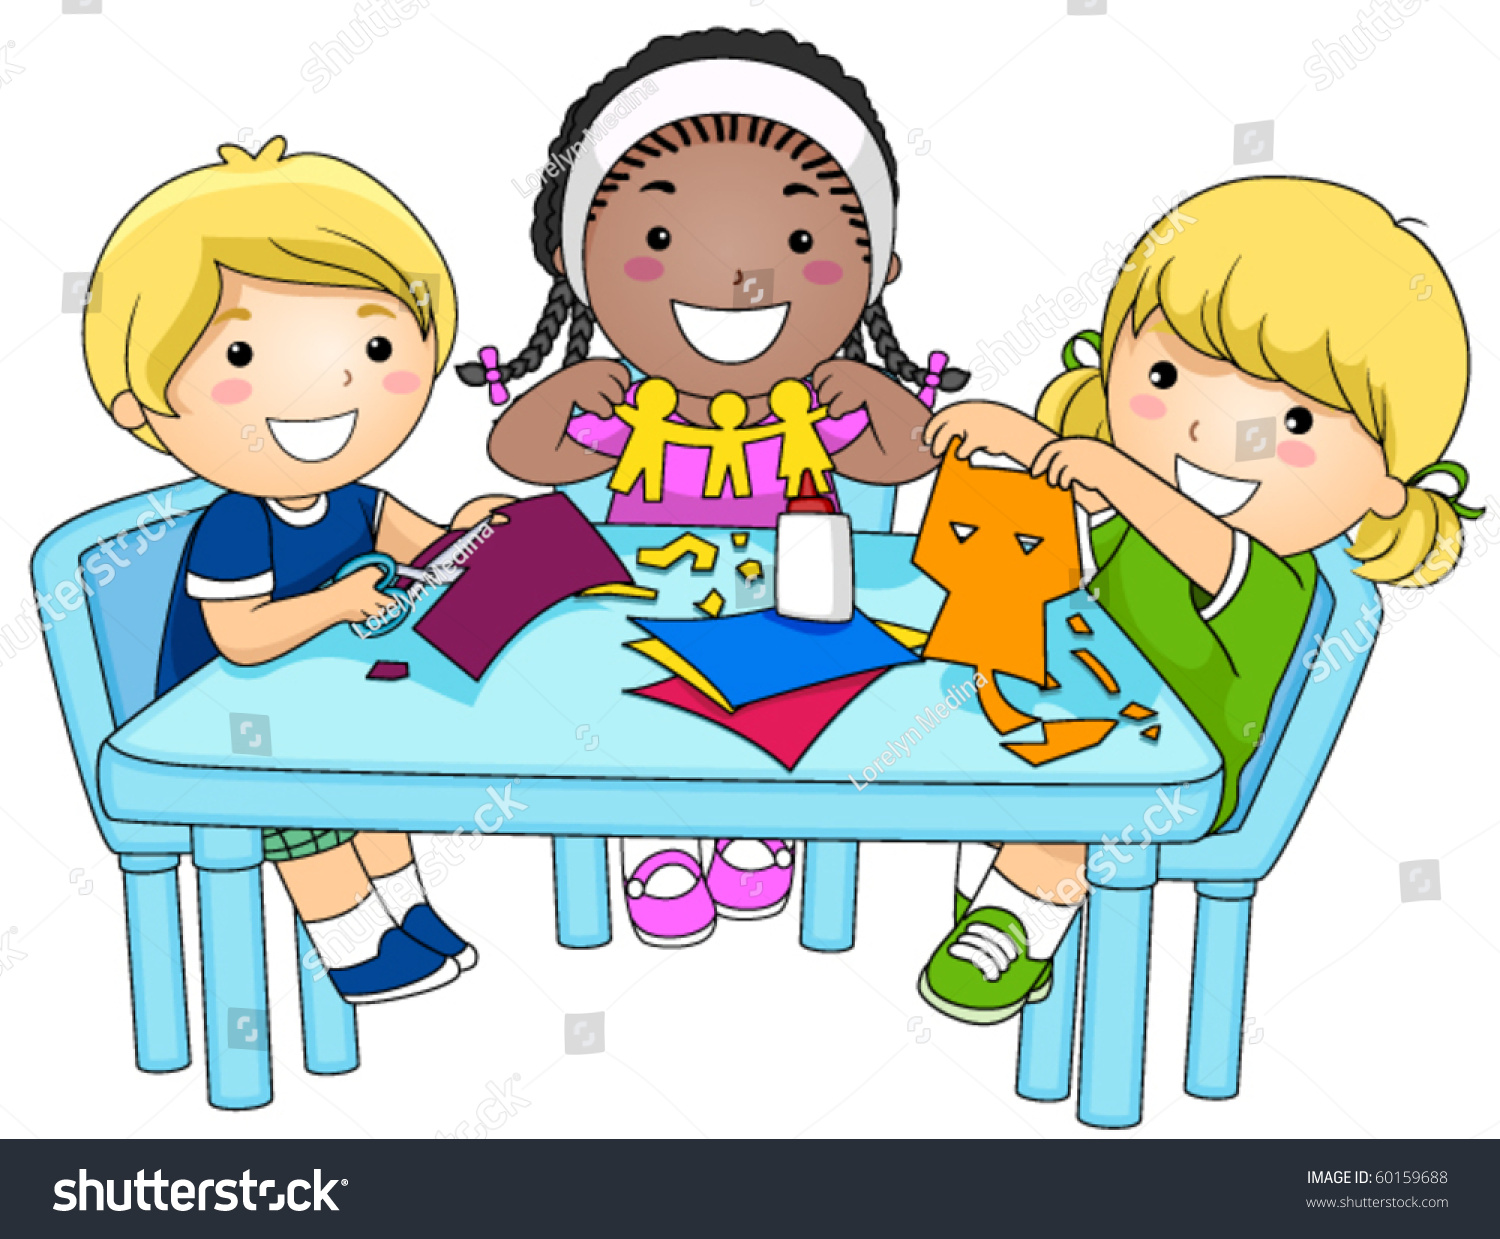 Schulklasse im unterricht clipart  Small Group Kids Making Paper Cutouts Stock-vektorgrafik 60159688 ...